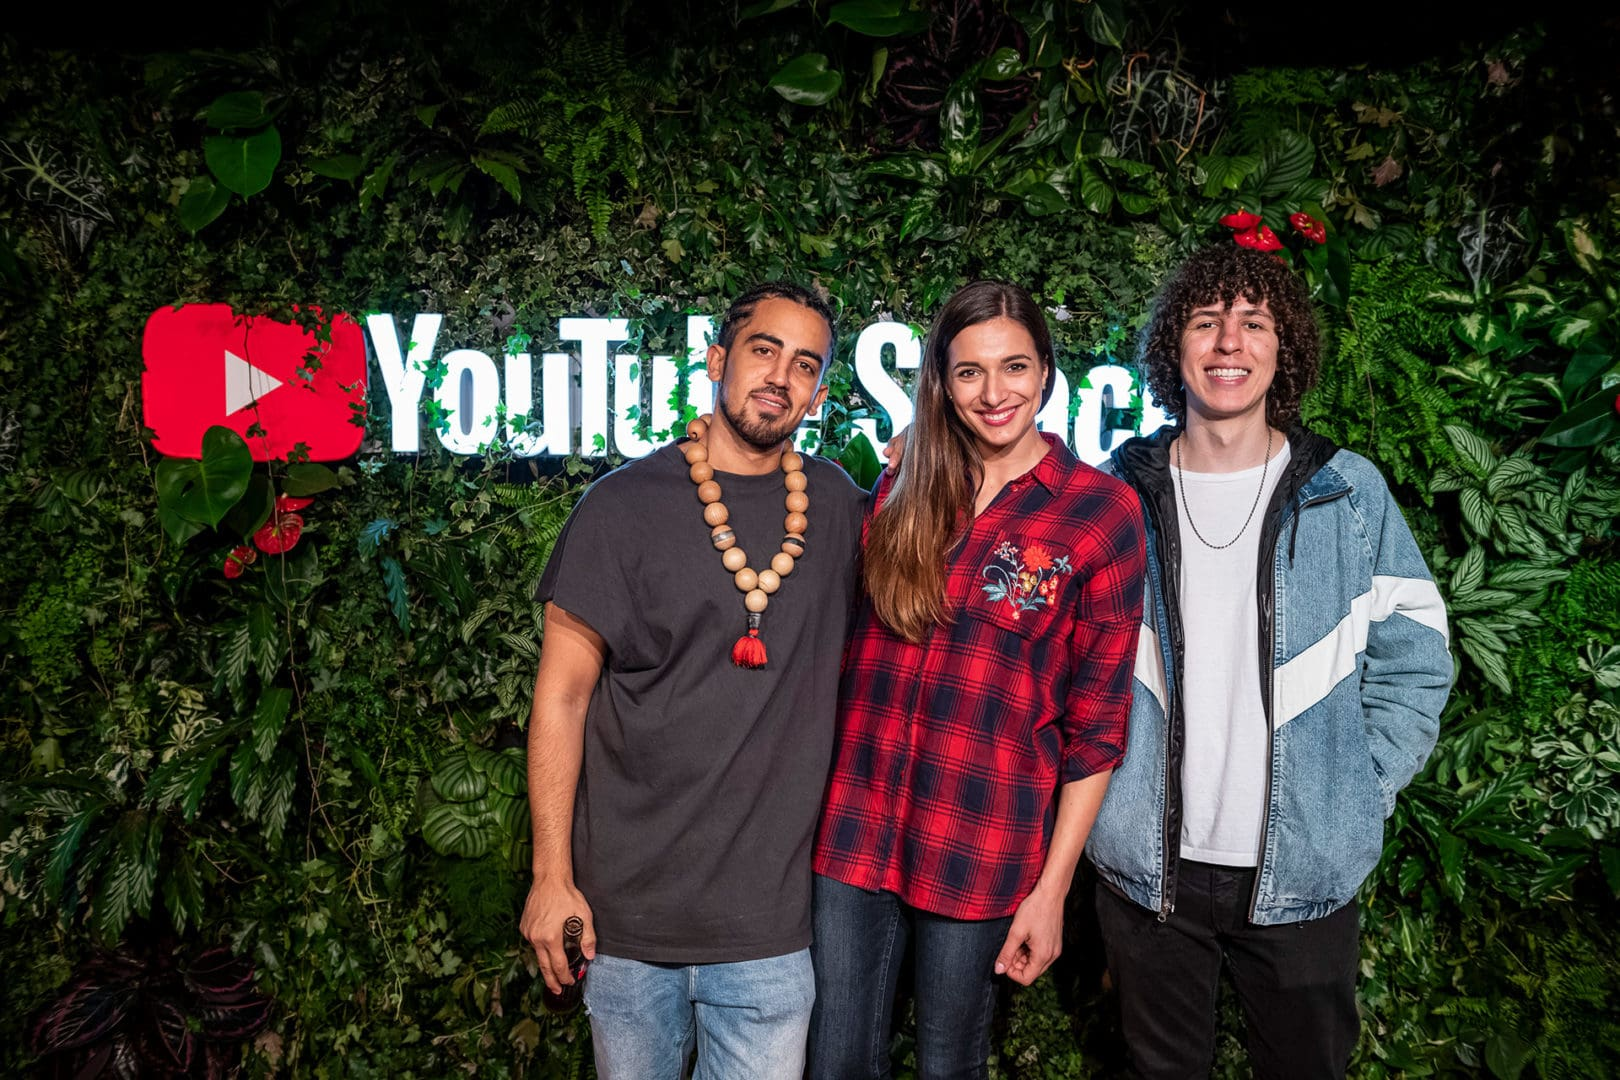 YouTube Stars posieren im YouTube Space in Berlin